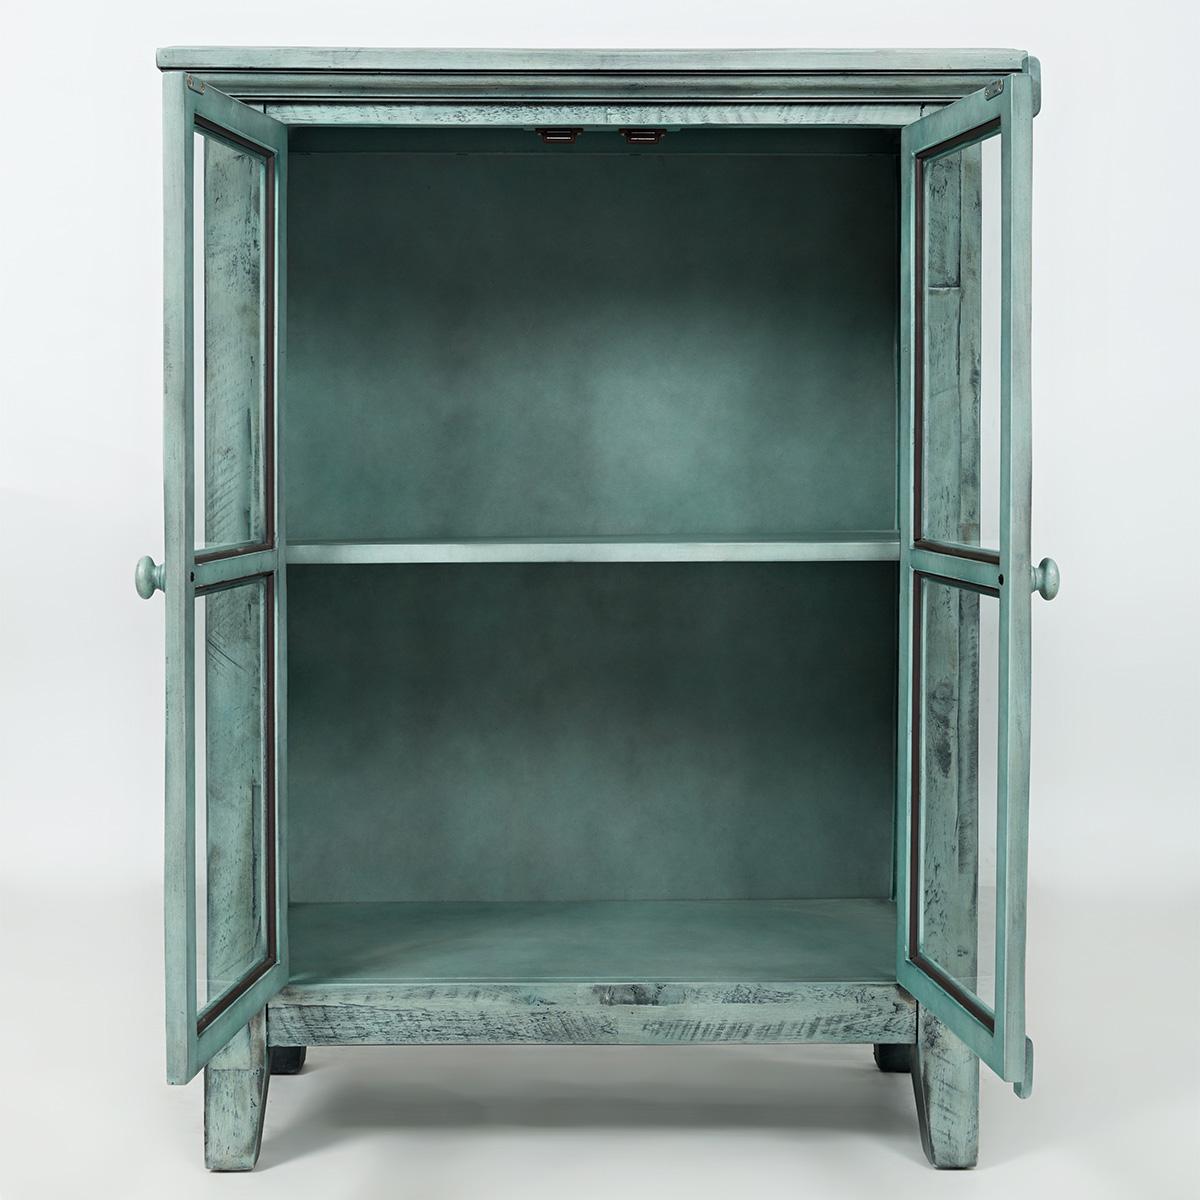 Accent cabinet with glass doors - Rustic Shores Surfside 32 Accent Cabinet In Distressed Vintage Blue W Glass Doors